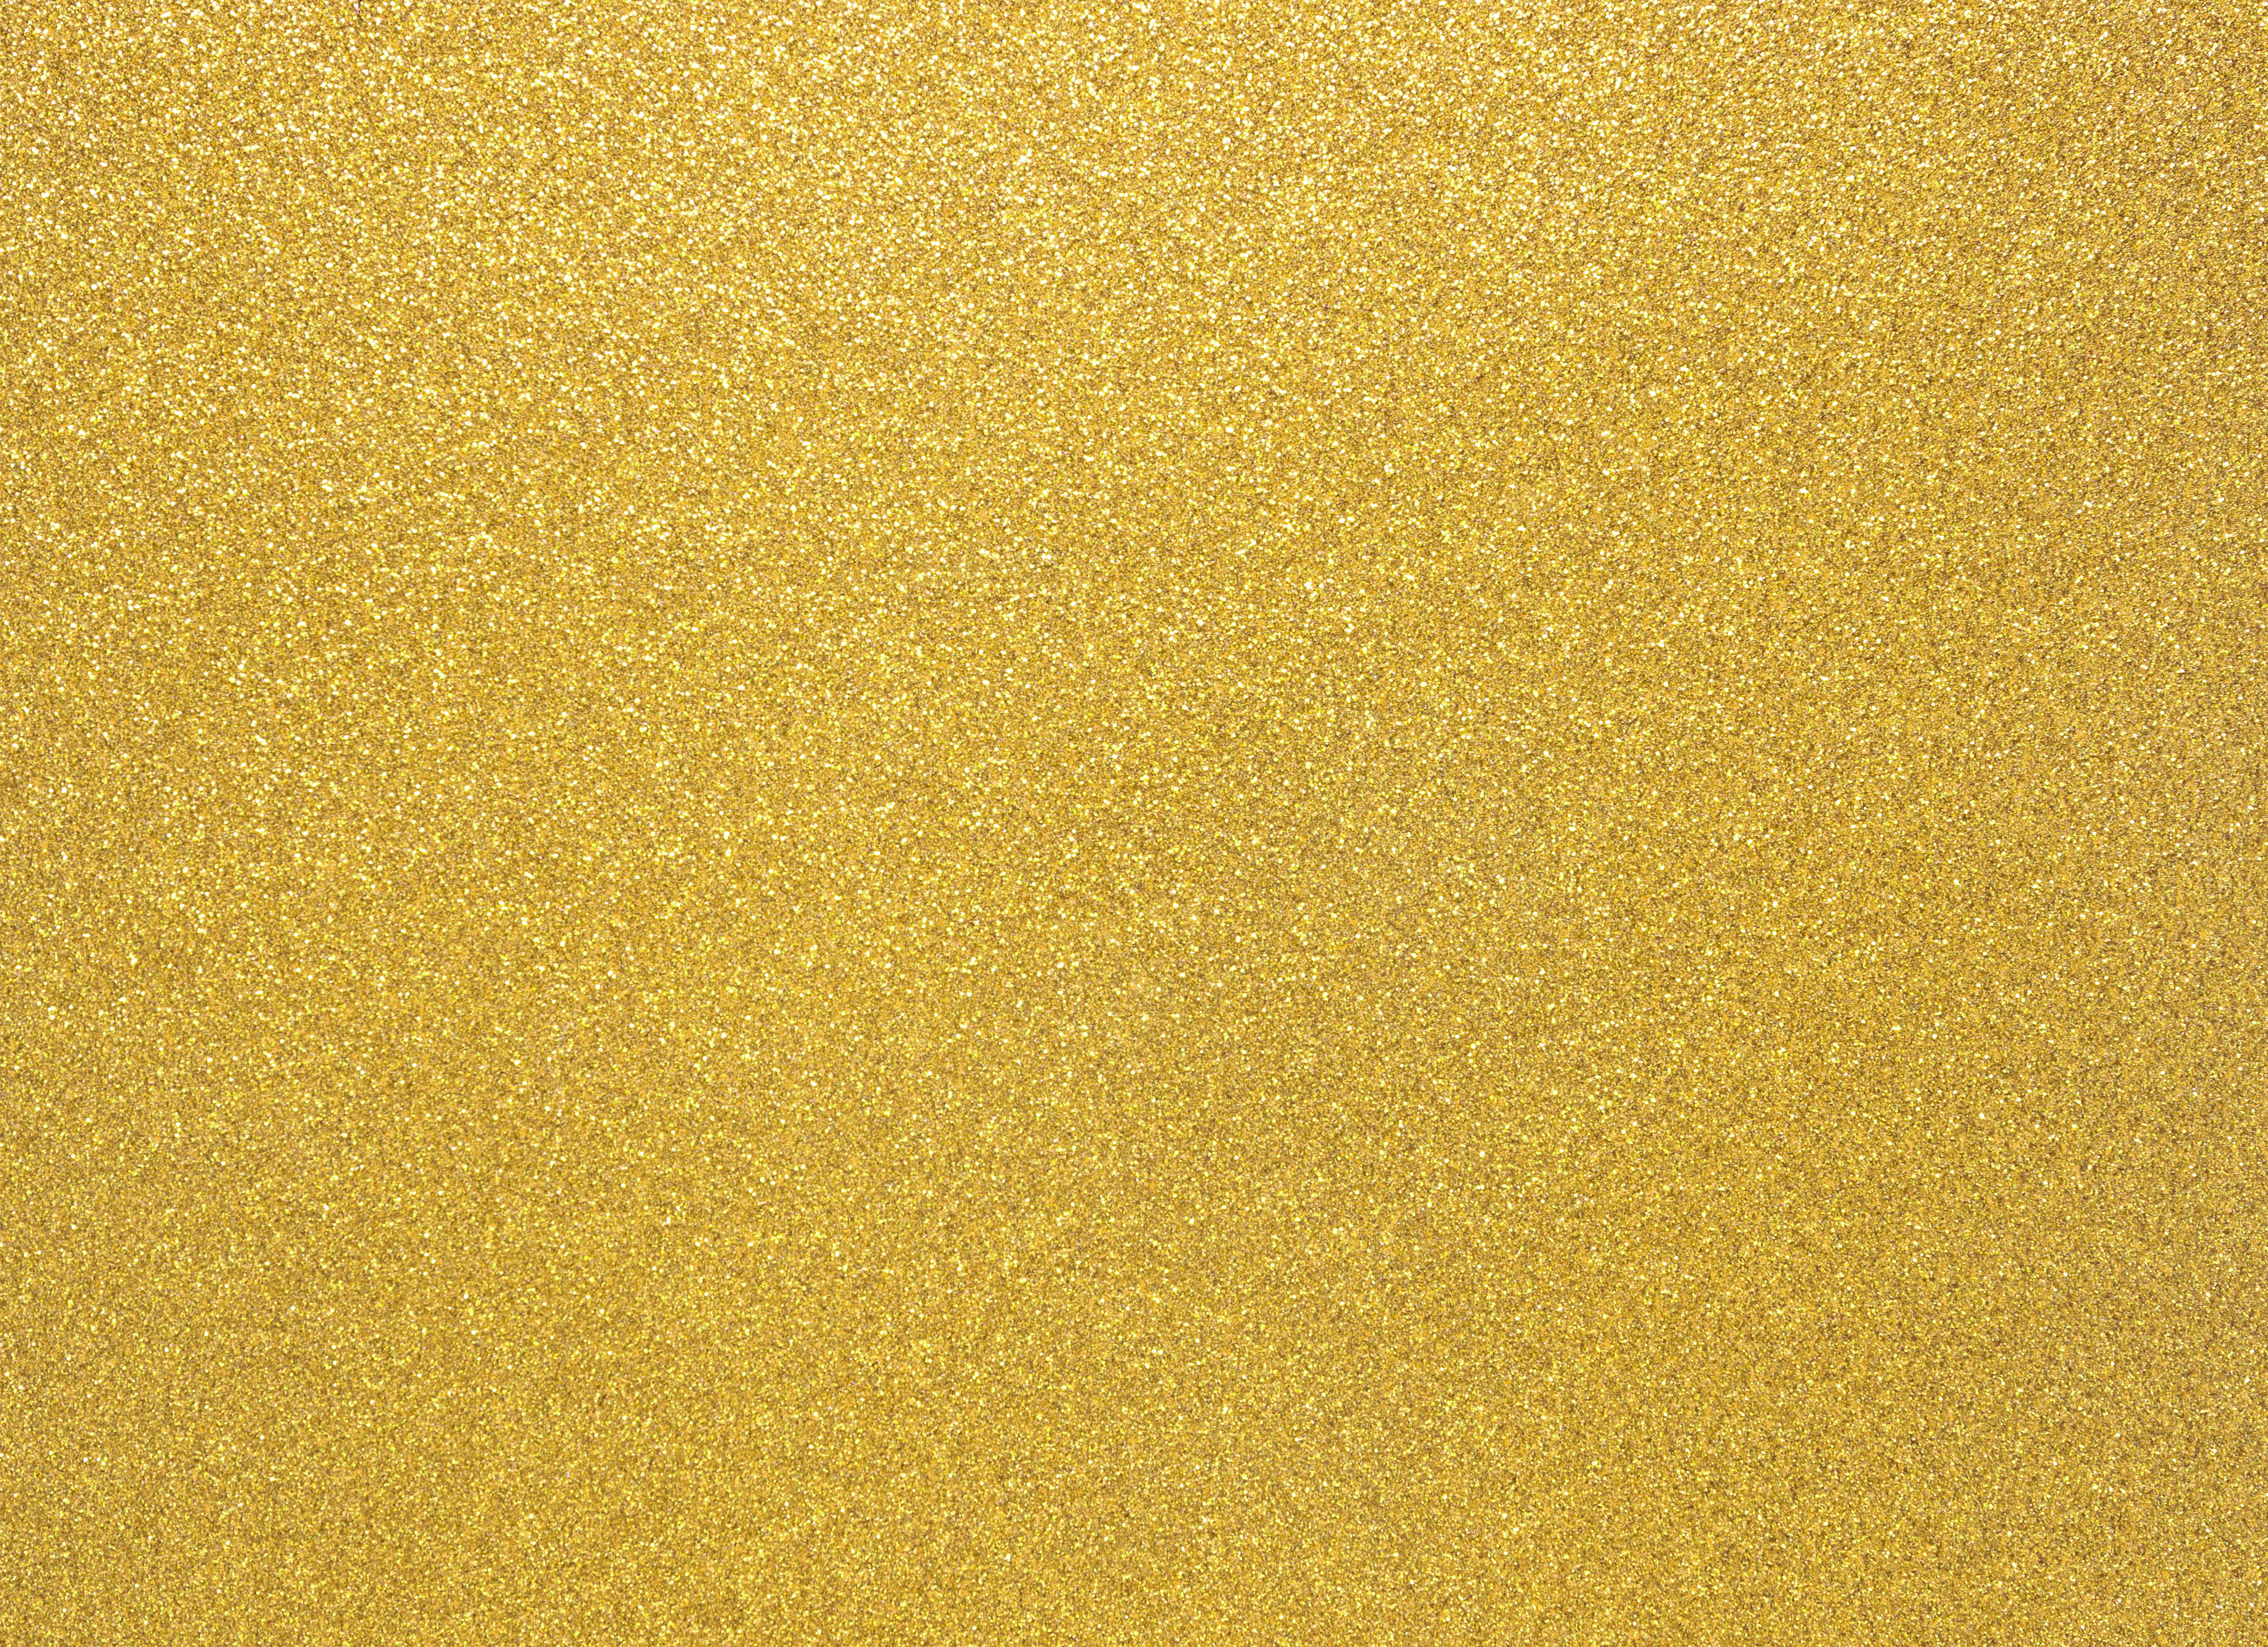 Yellow Glitter Background.